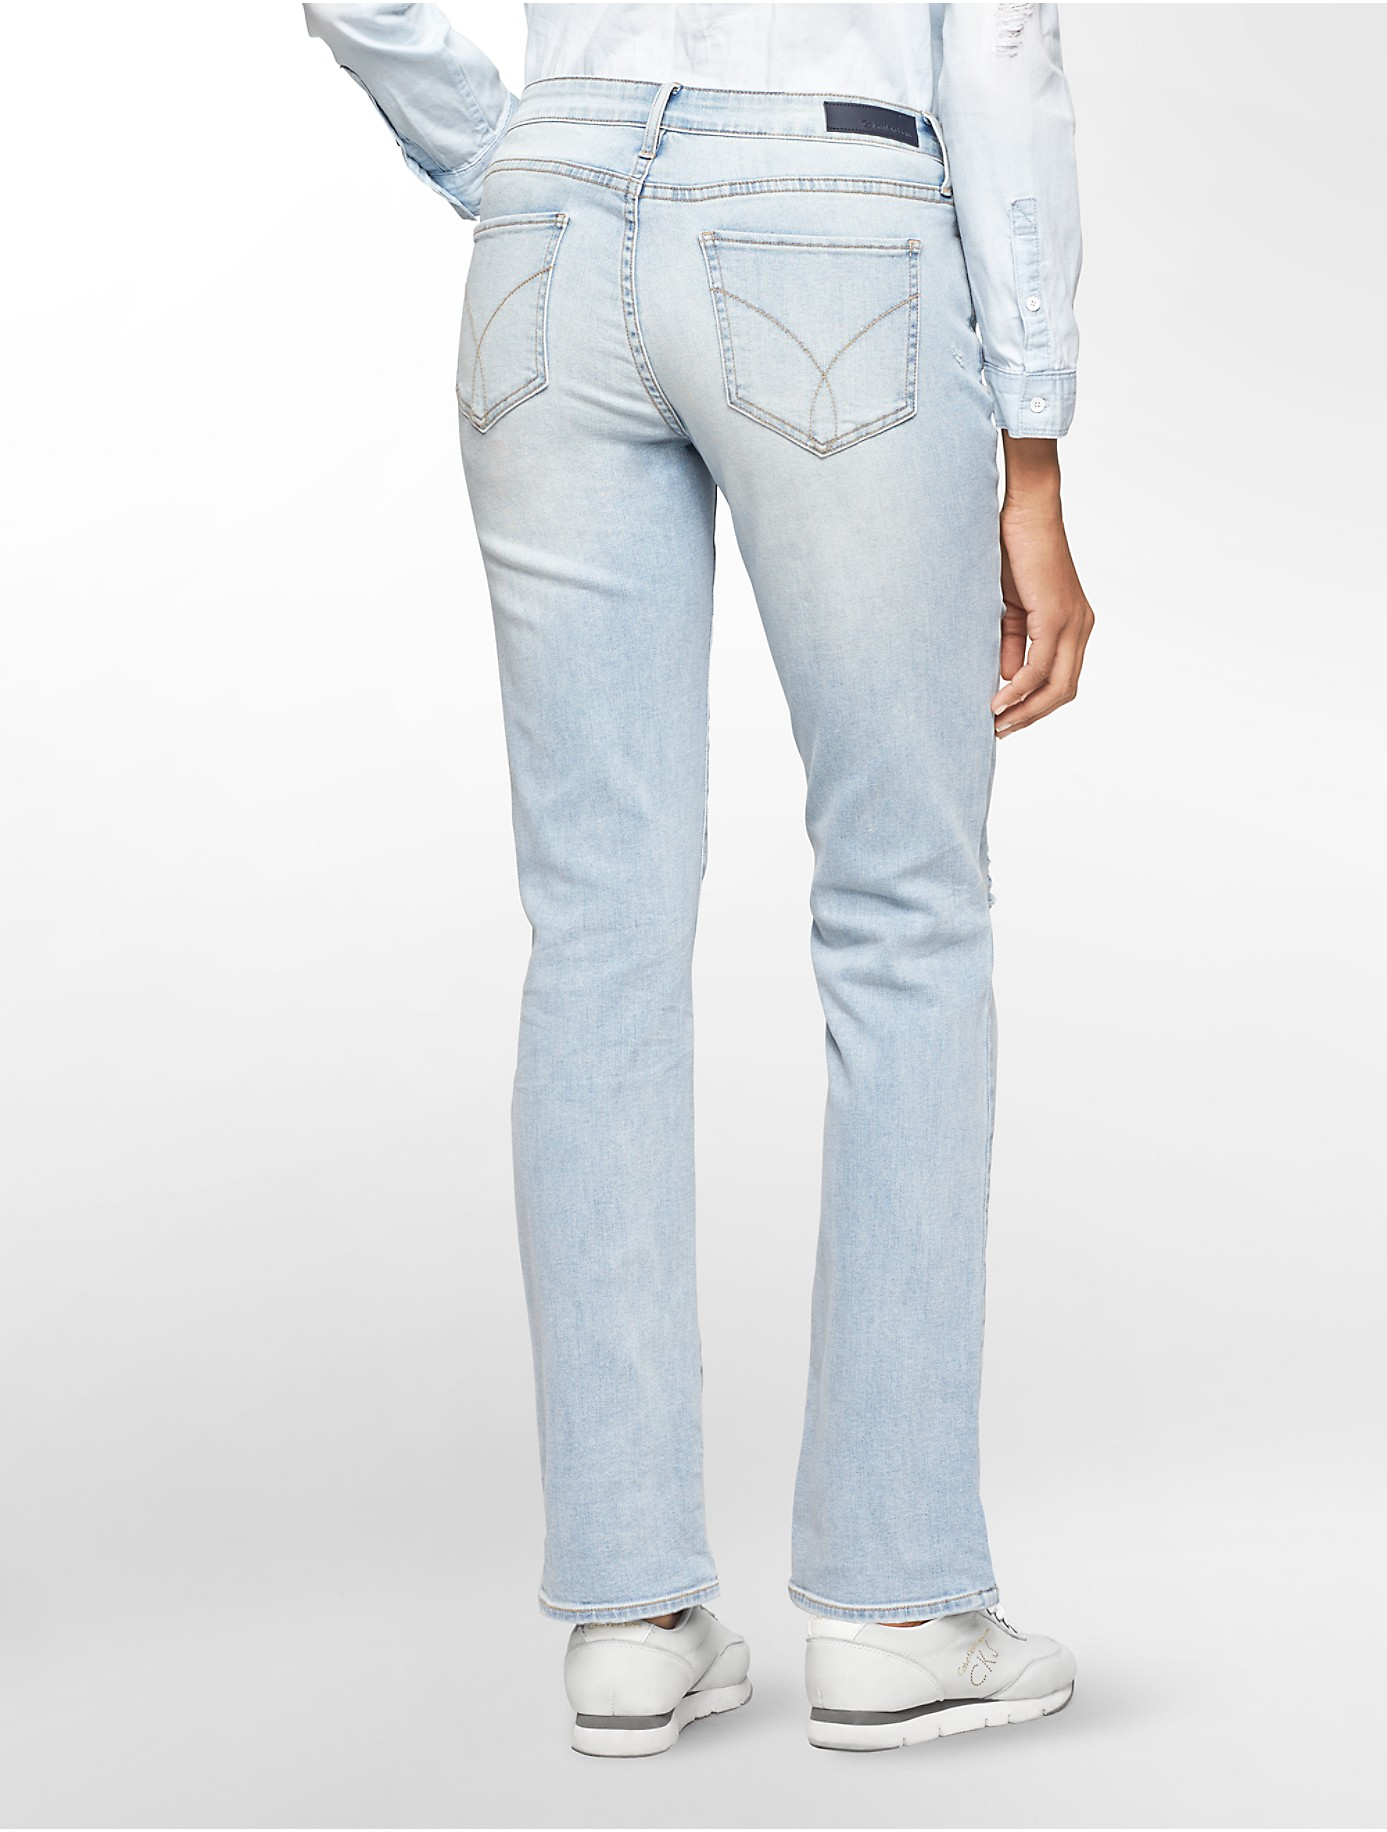 Calvin klein Jeans Straight Leg Destroyed Light Wash Jeans in Blue ...